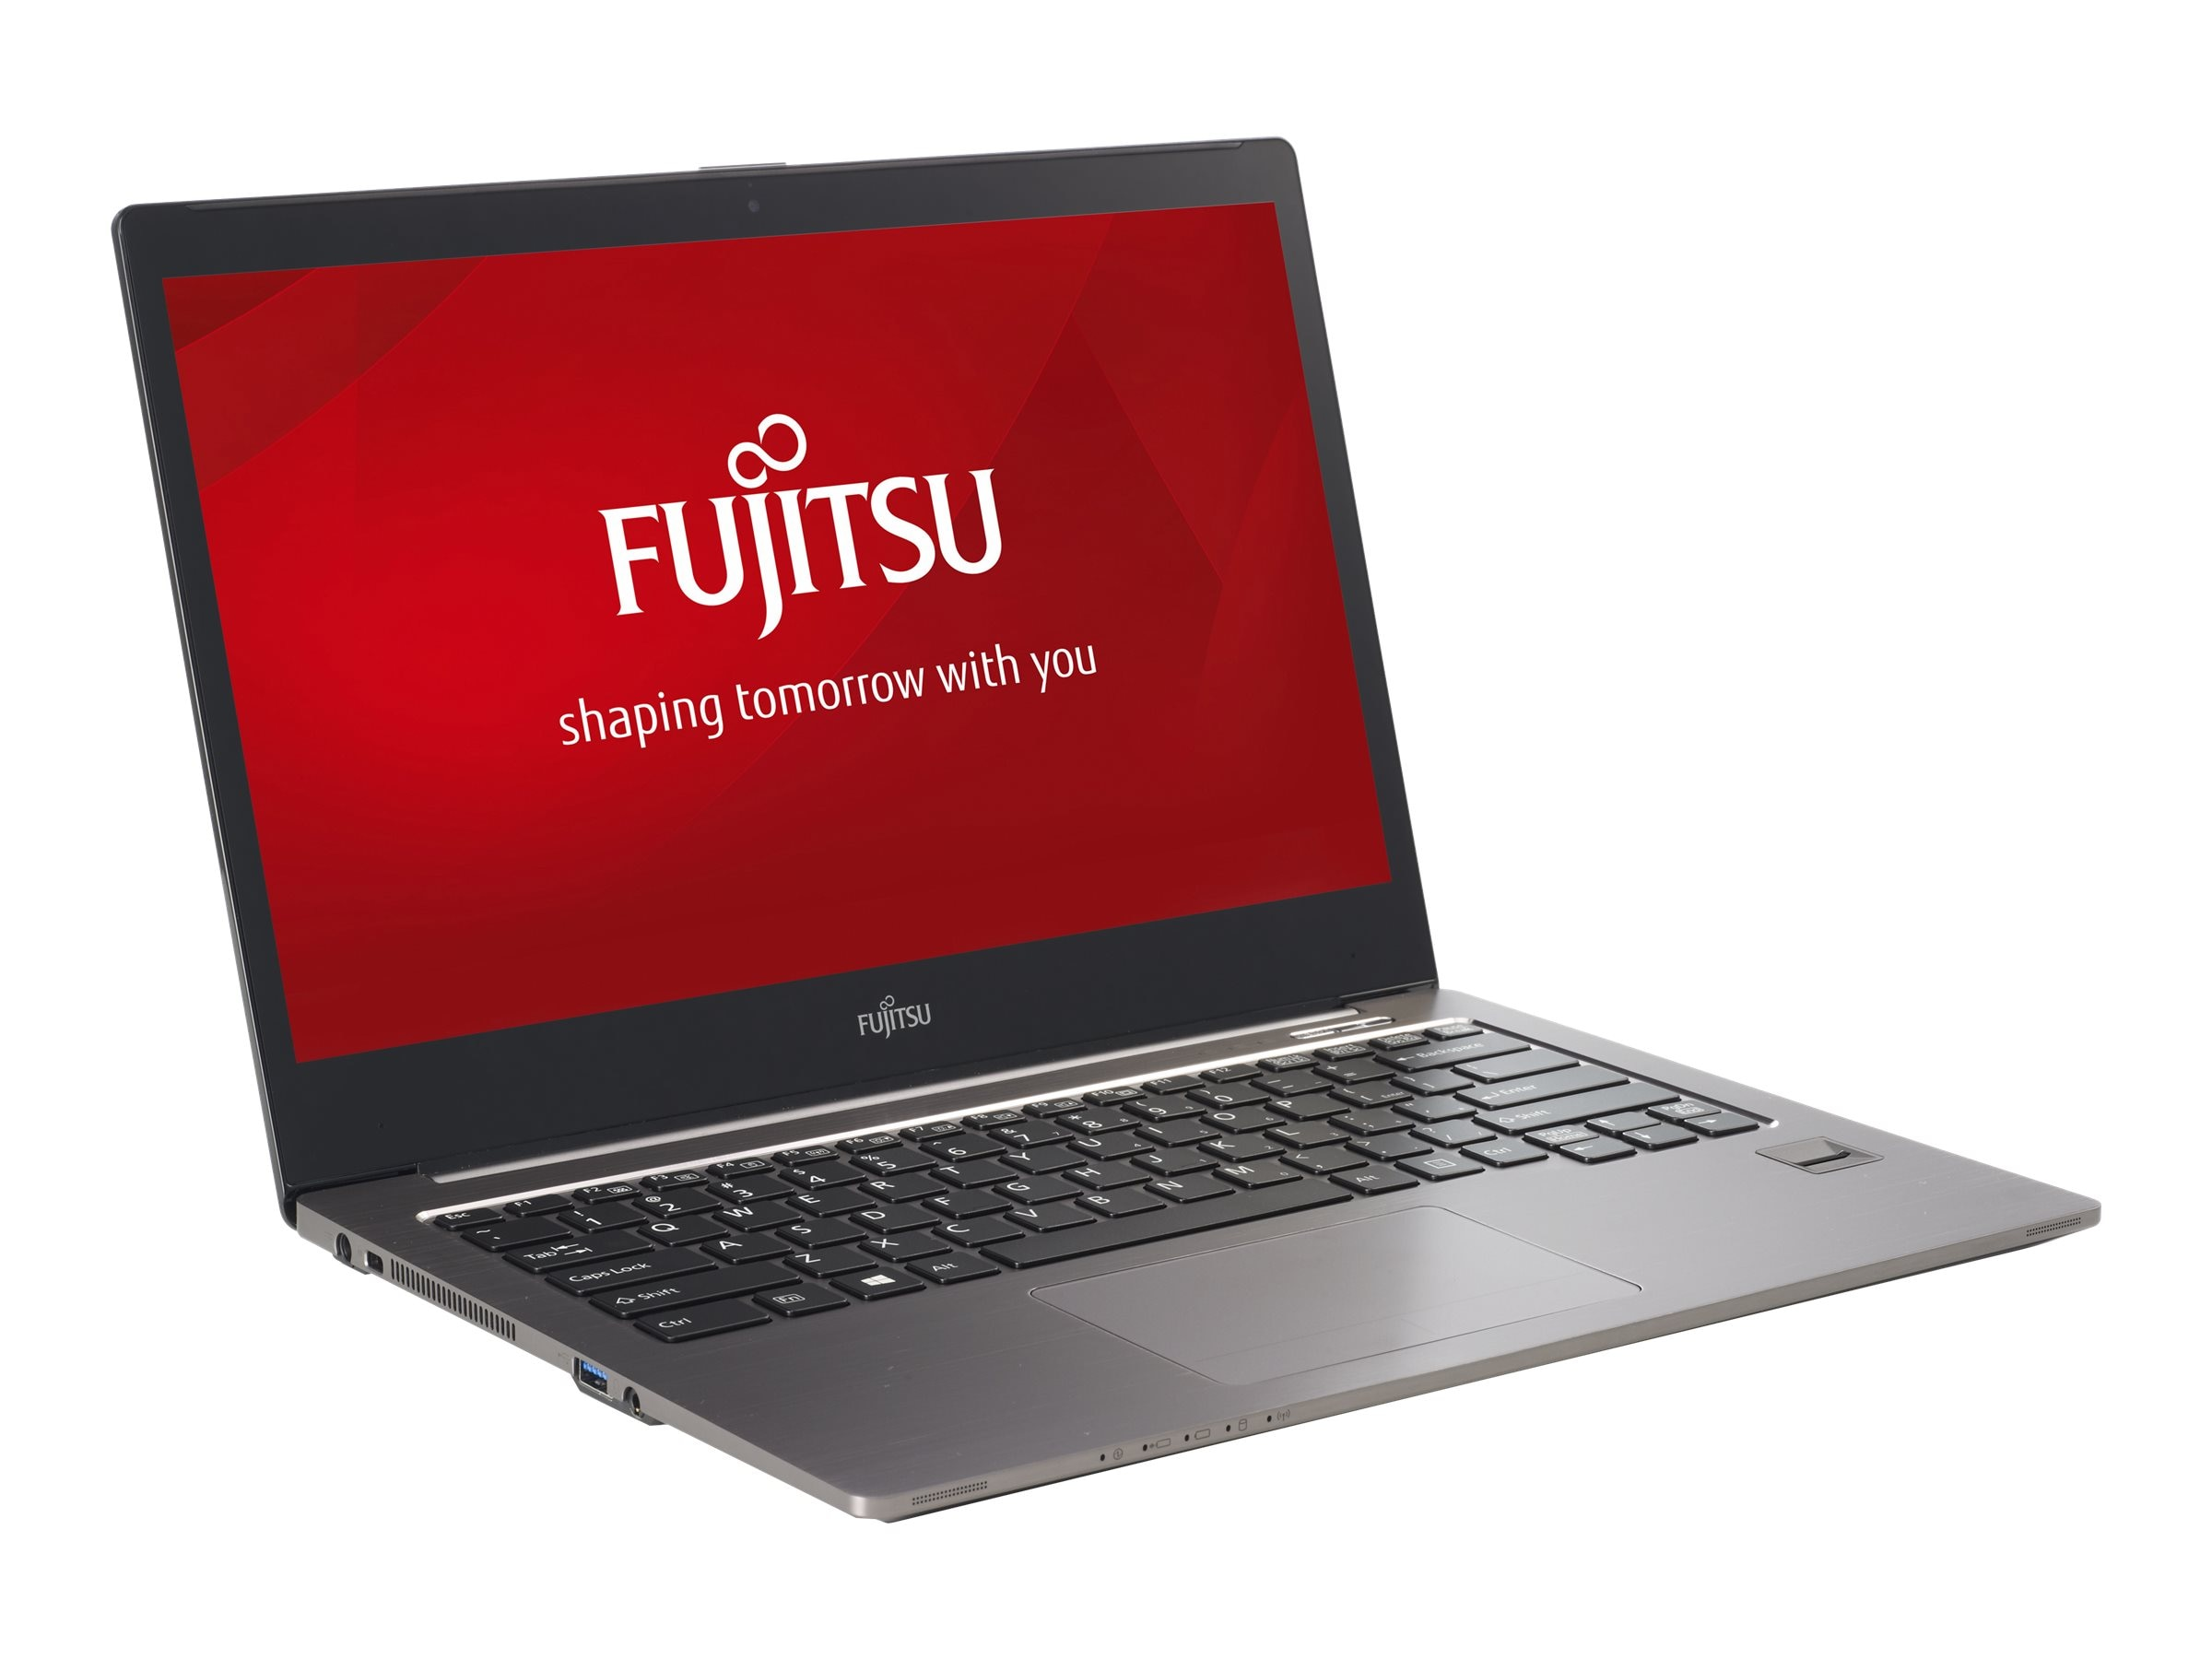 Open Box Fujitsu LifeBook U904 Core i5-4200U 1.6GHz 6GB 500GB SSHD agn GNIC BT FR WC 14 QHD+ MT WiDi W7P64-W8, XBUY-U904-001, 30739560, Notebooks